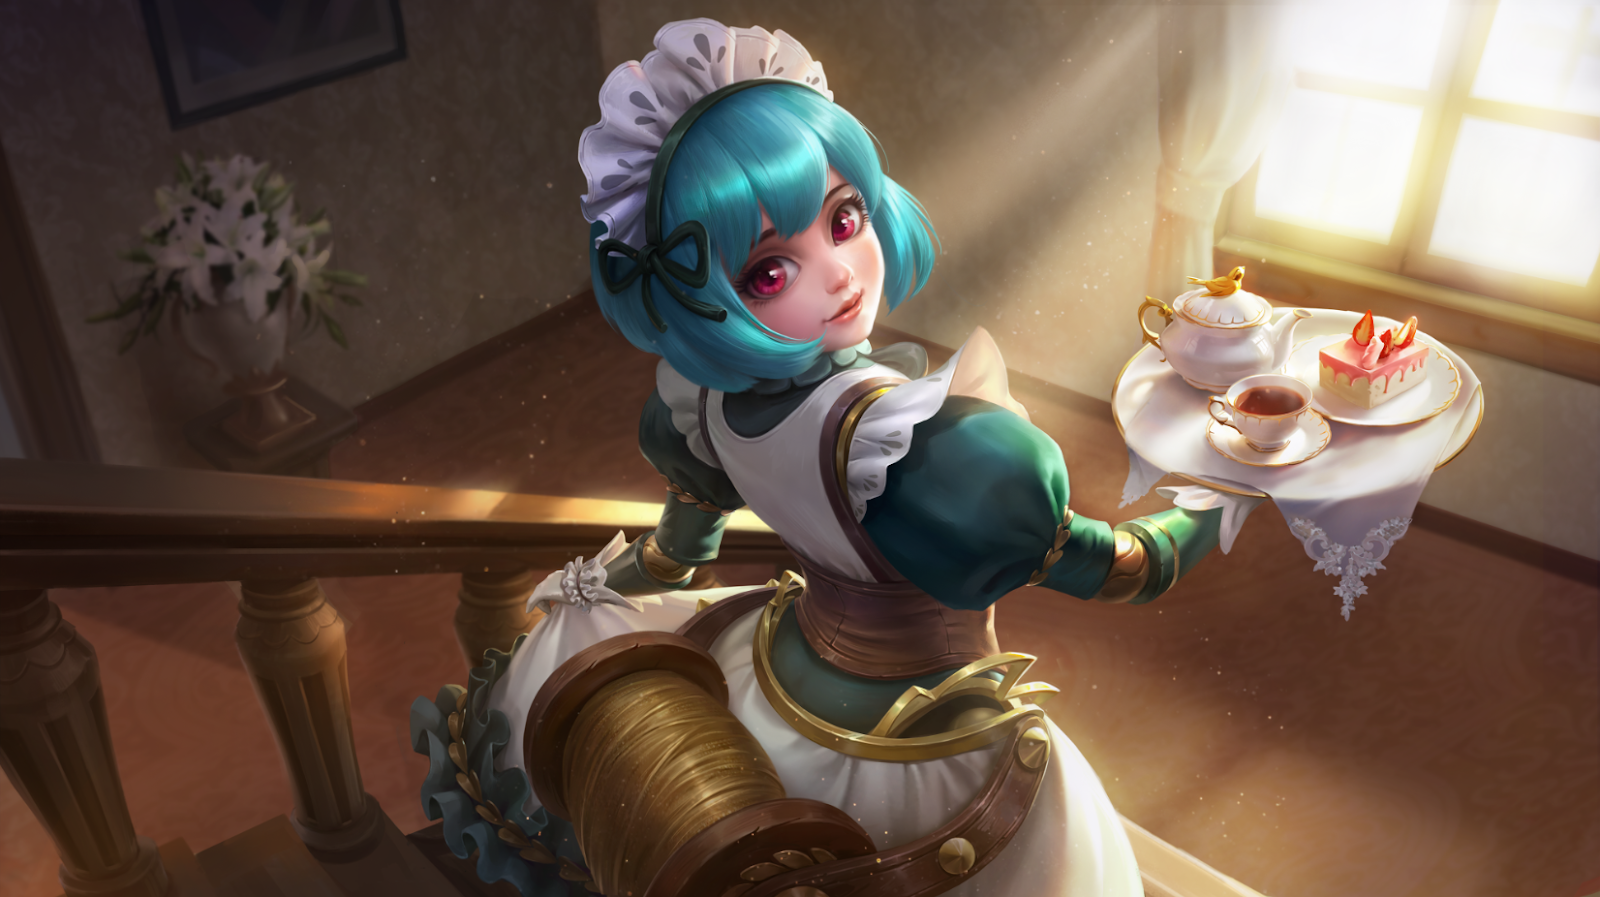 Best Mobile Legends Heroes Wallpapers You Must Have This A